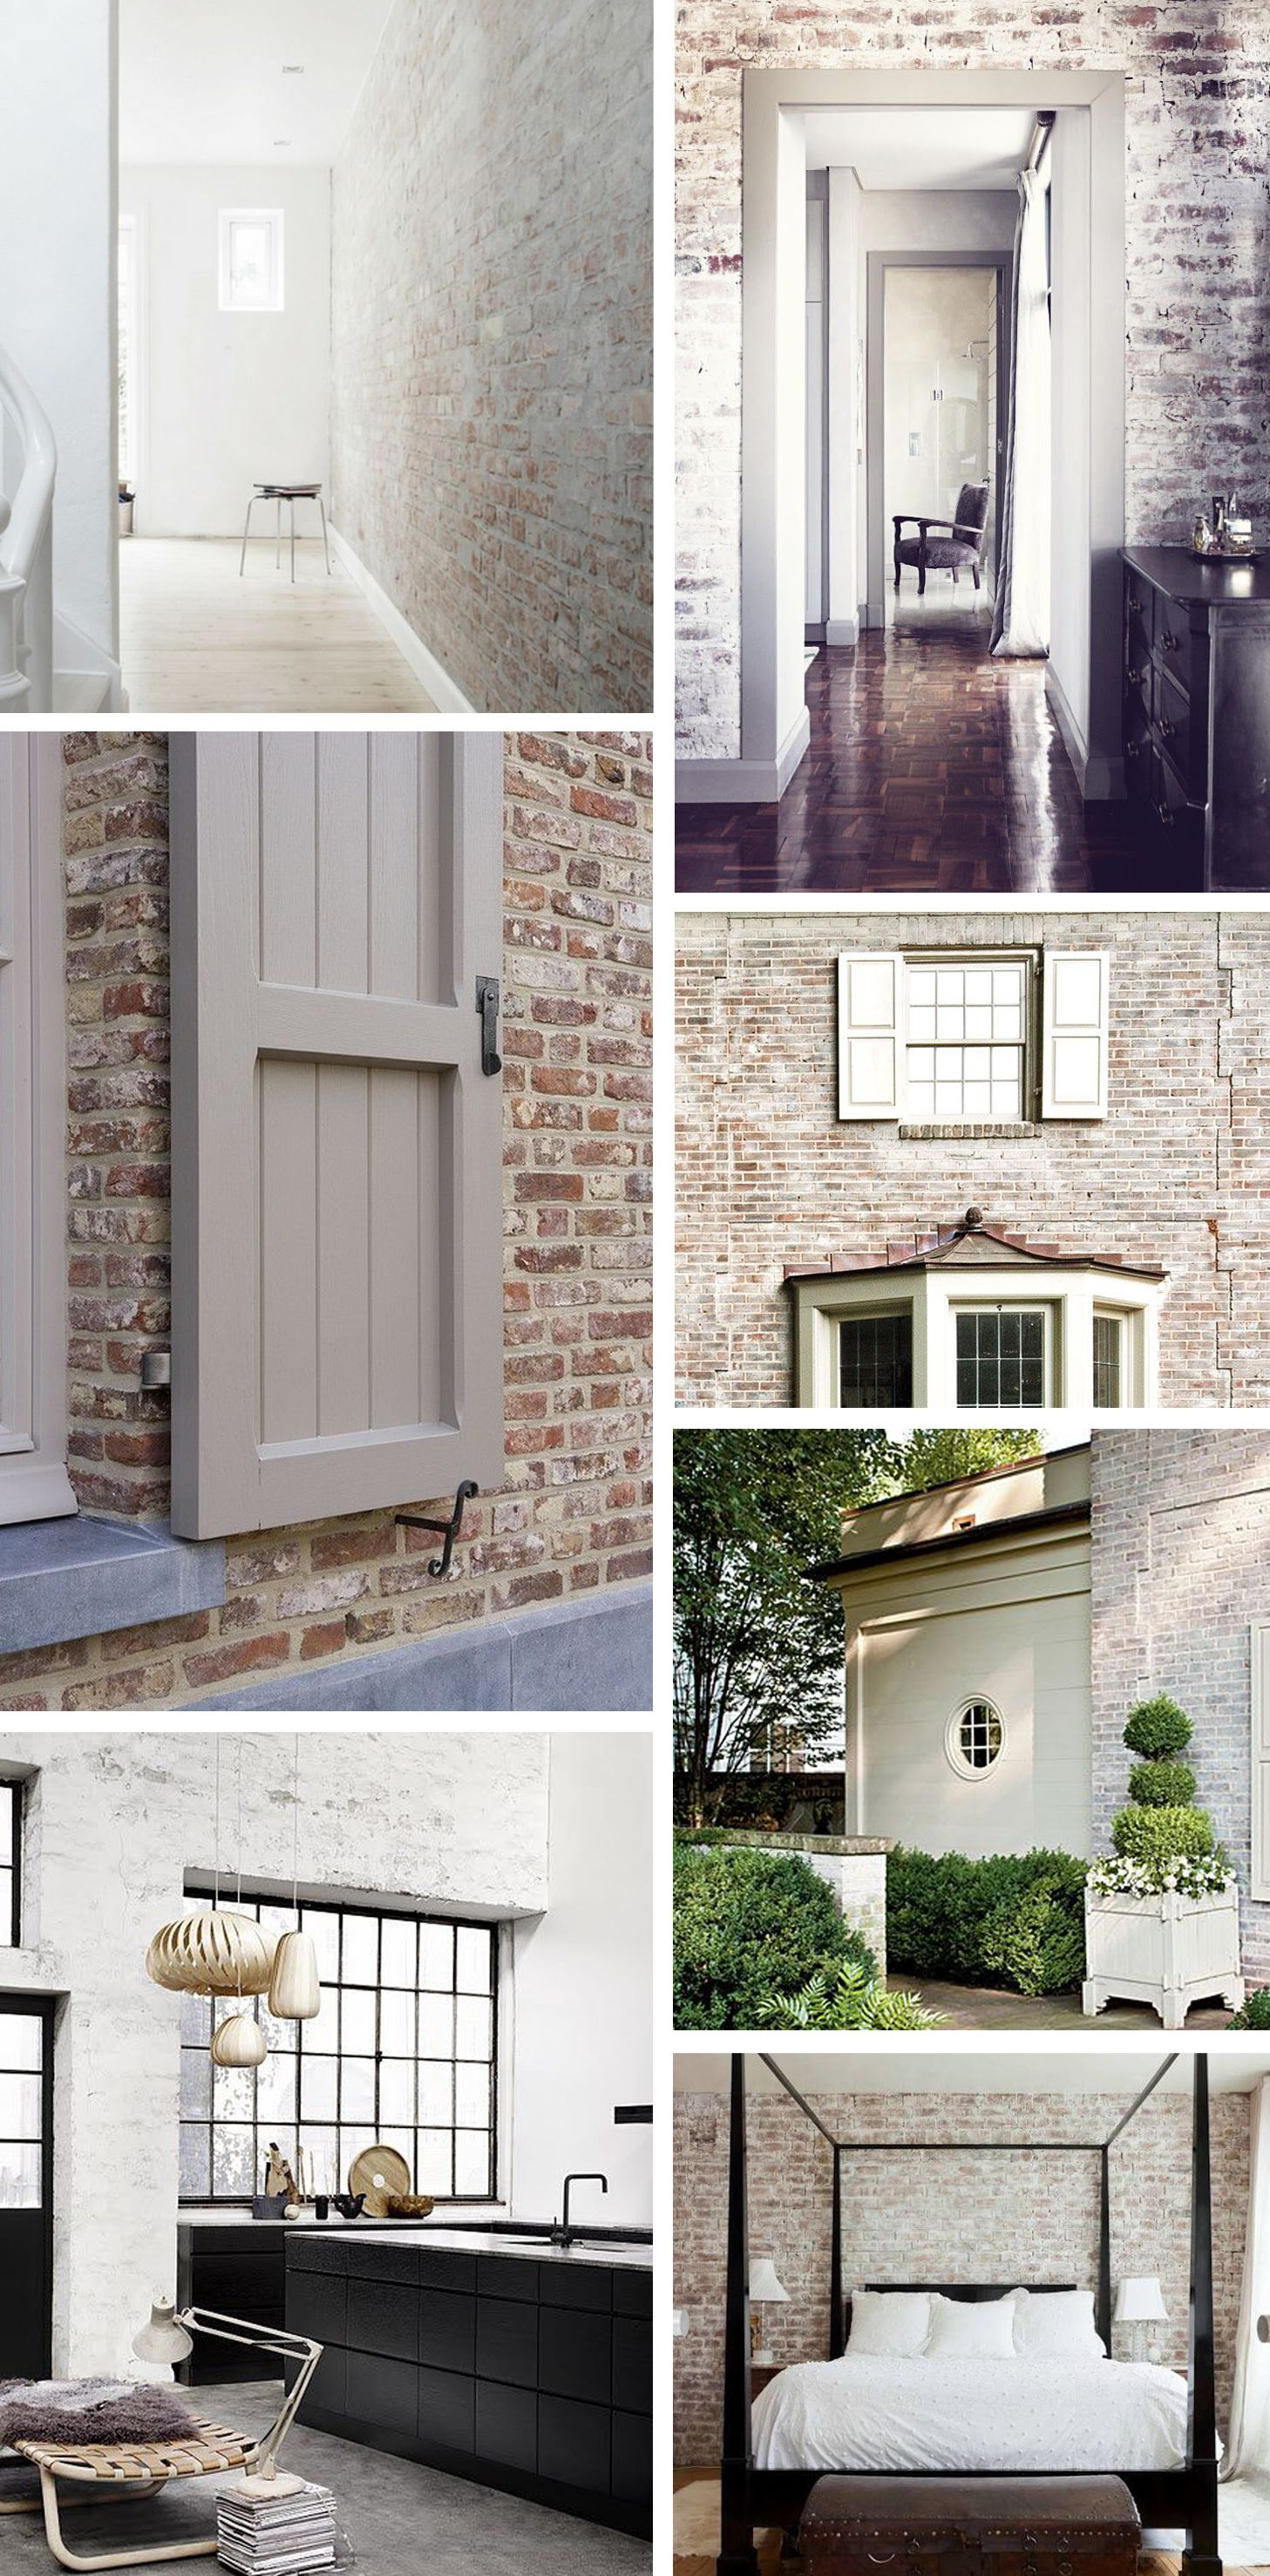 Residential Commercial Interior Designers Hampshire Fawn Interior Design Hampshire Surrey Wiltshire Exterior Brick House Exterior Exterior Design